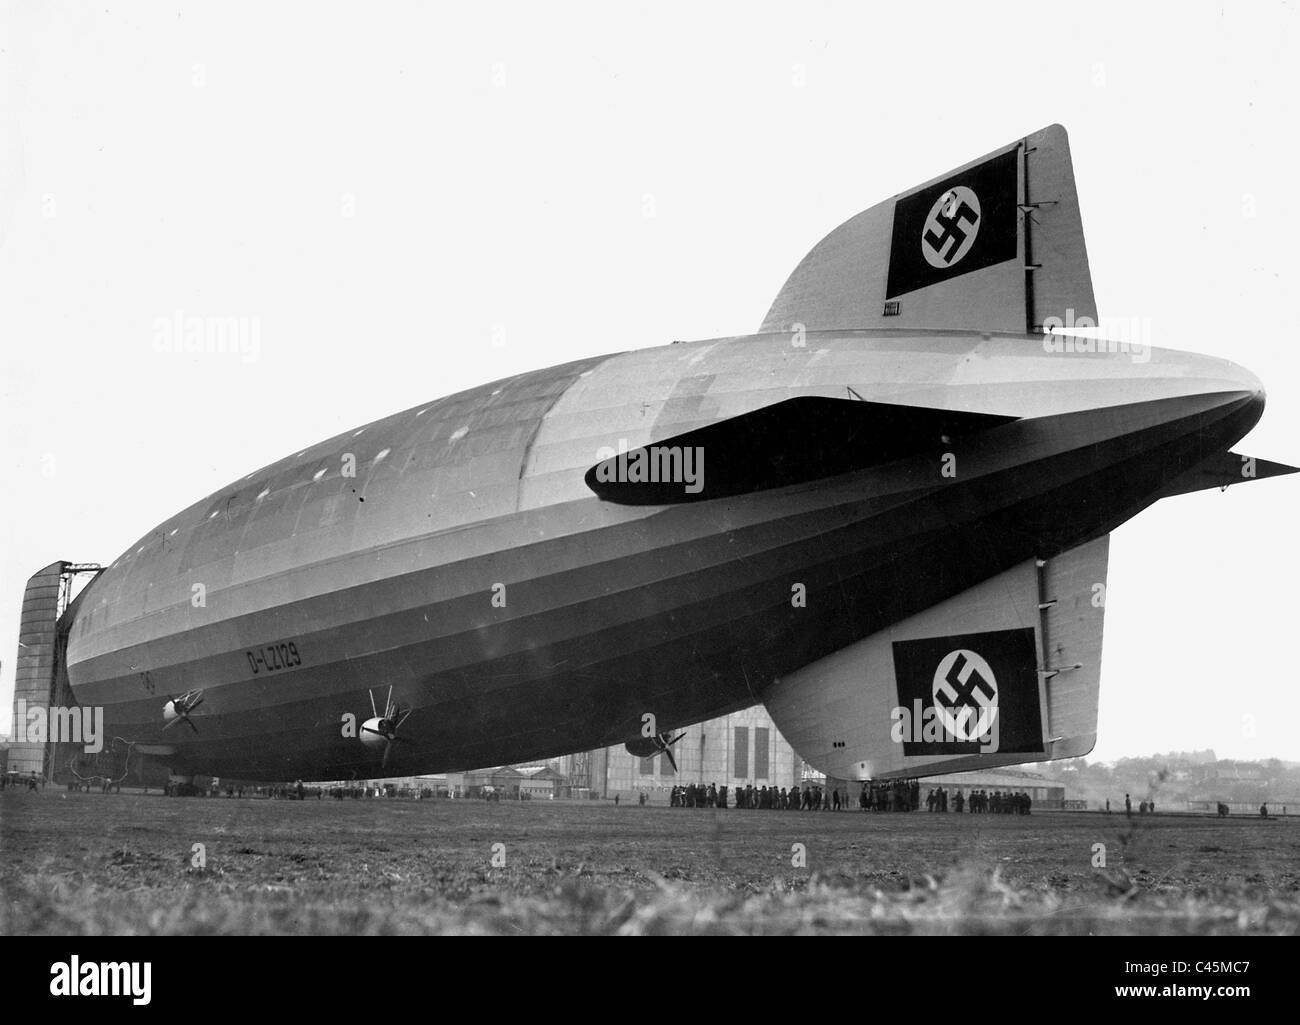 The first flight of the Zeppelin airship 'Hindenburg' (LZ 129), 1936